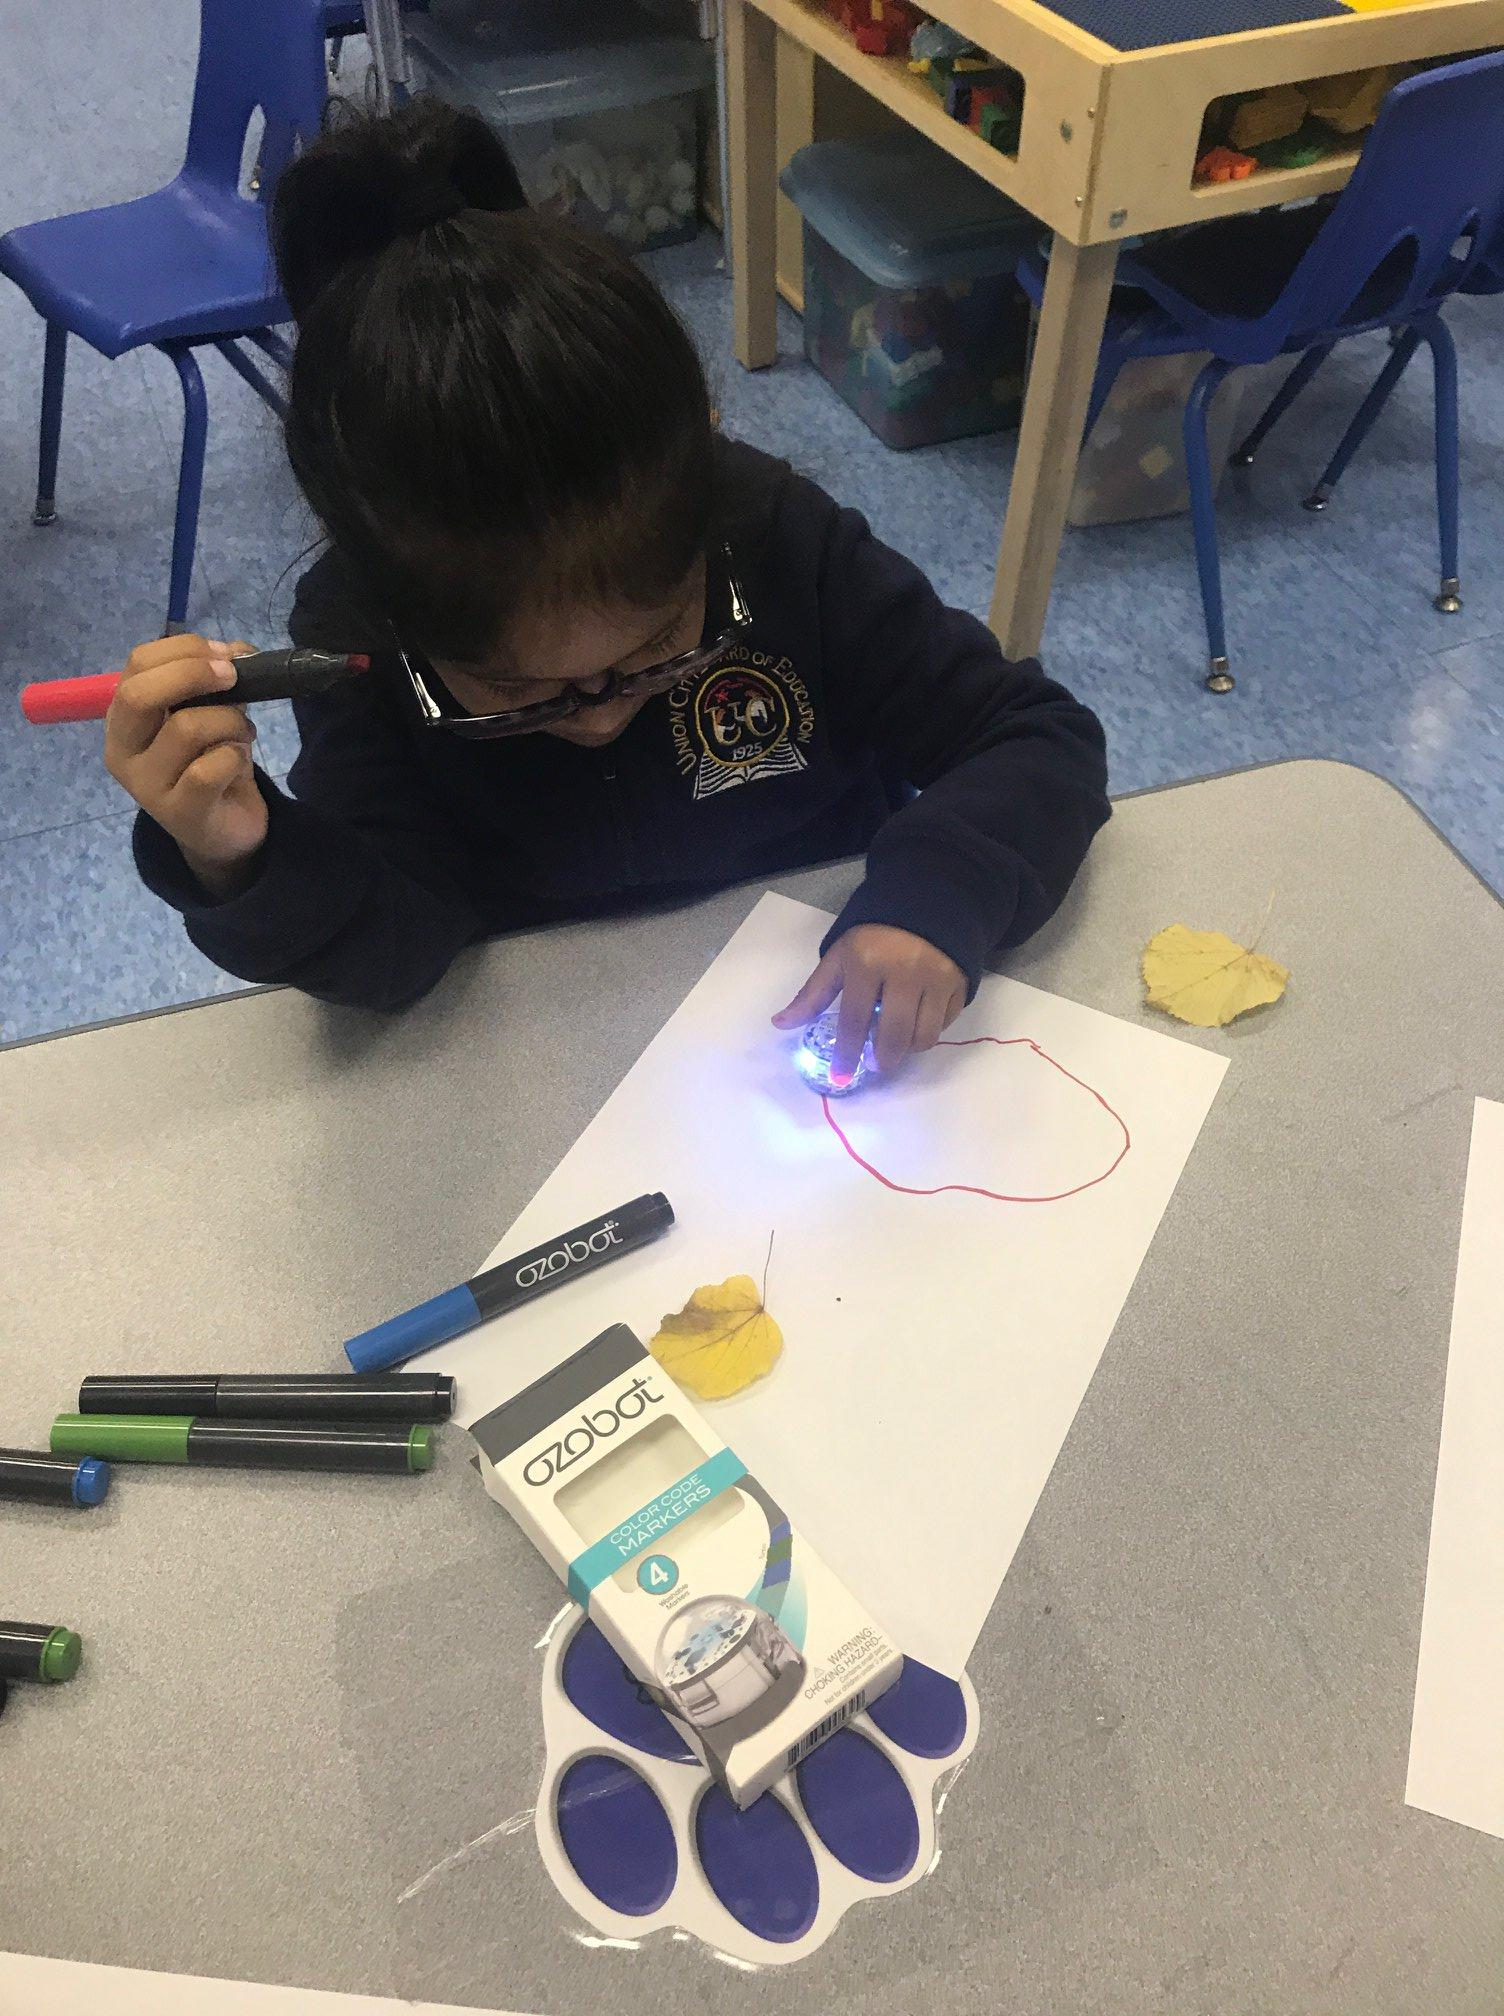 Little girl with an ozobot coding tools creating a drawing